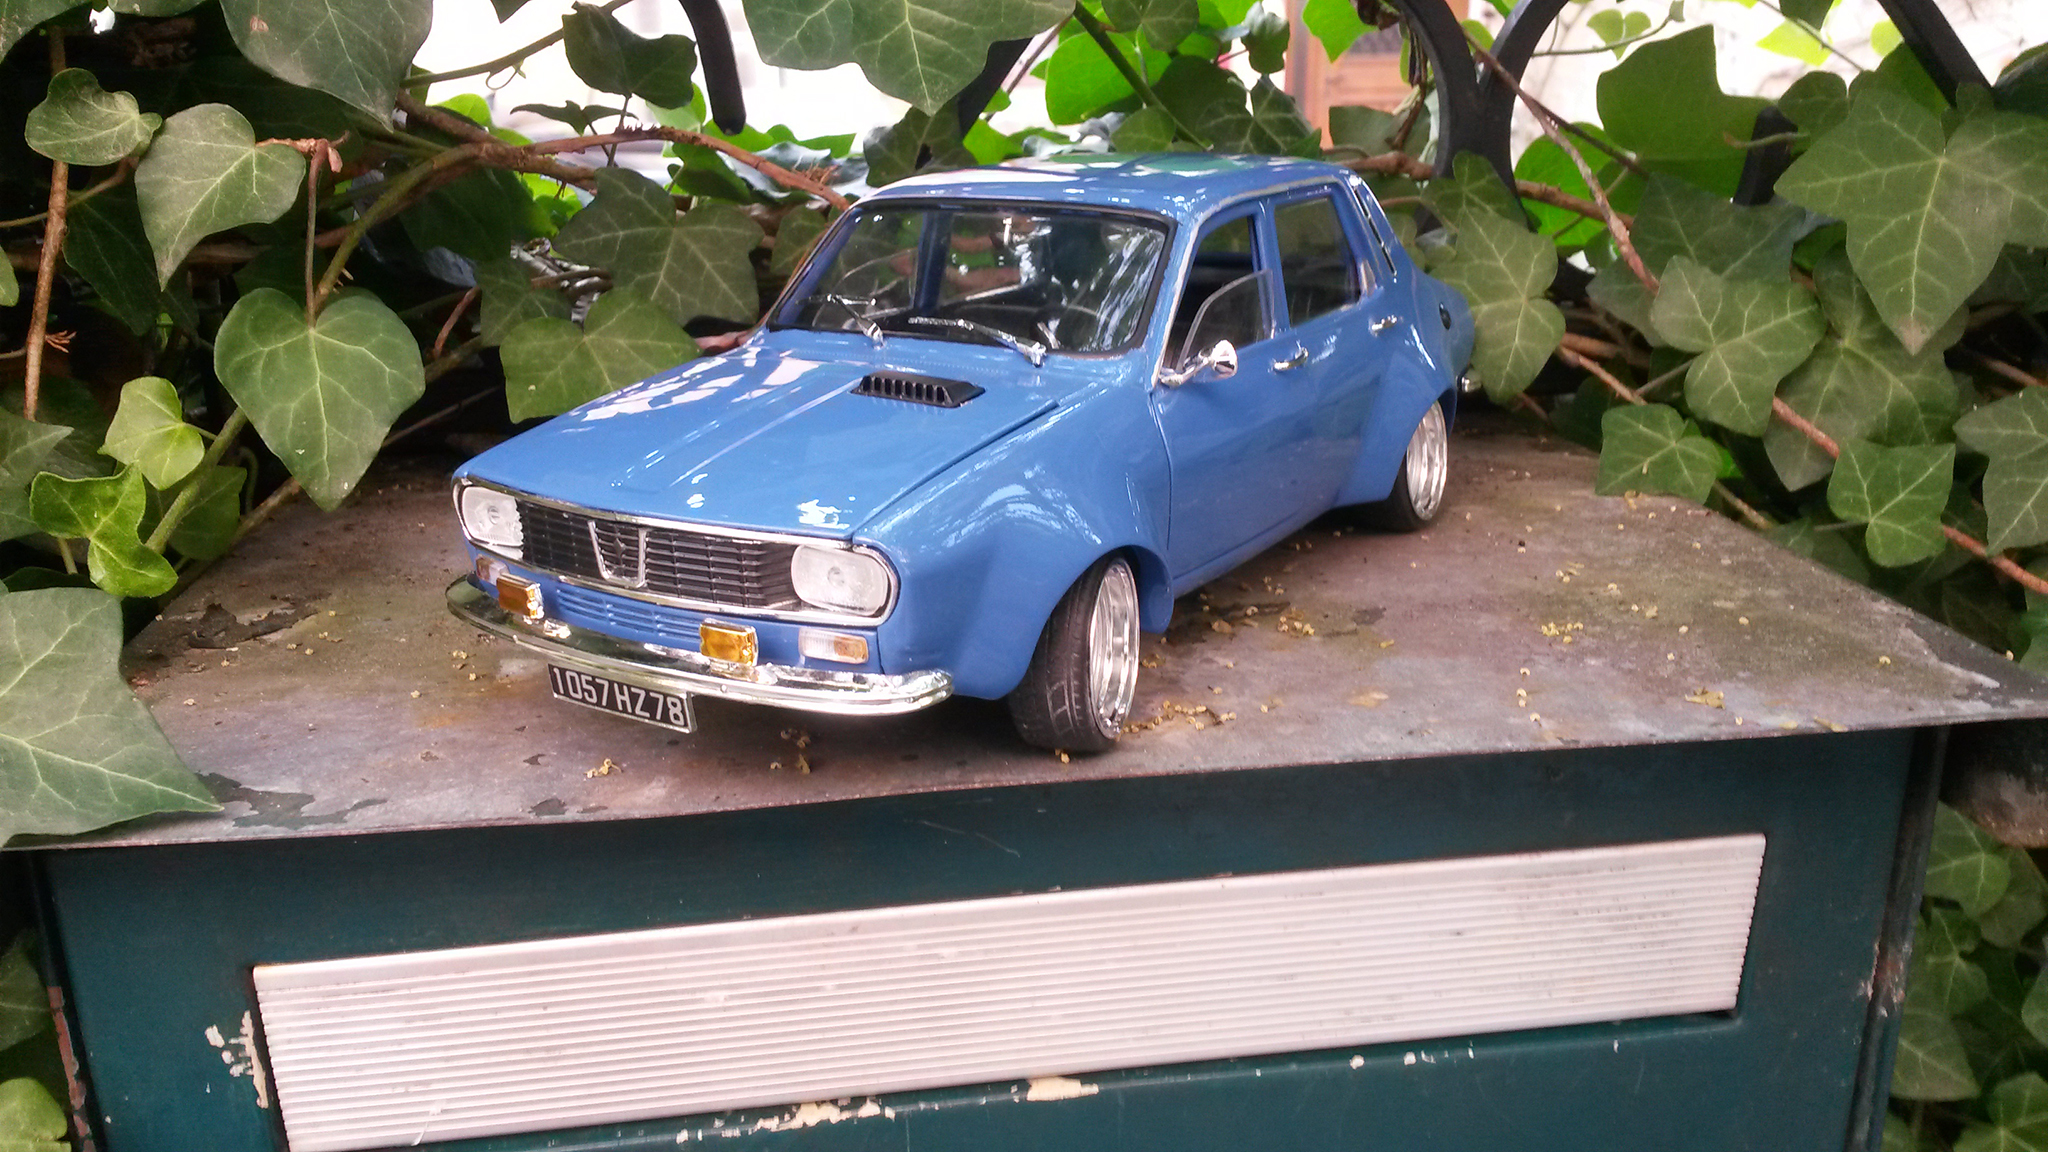 Renault 12 Gordini 1/18 Solido kit large groupe A tuning diecast